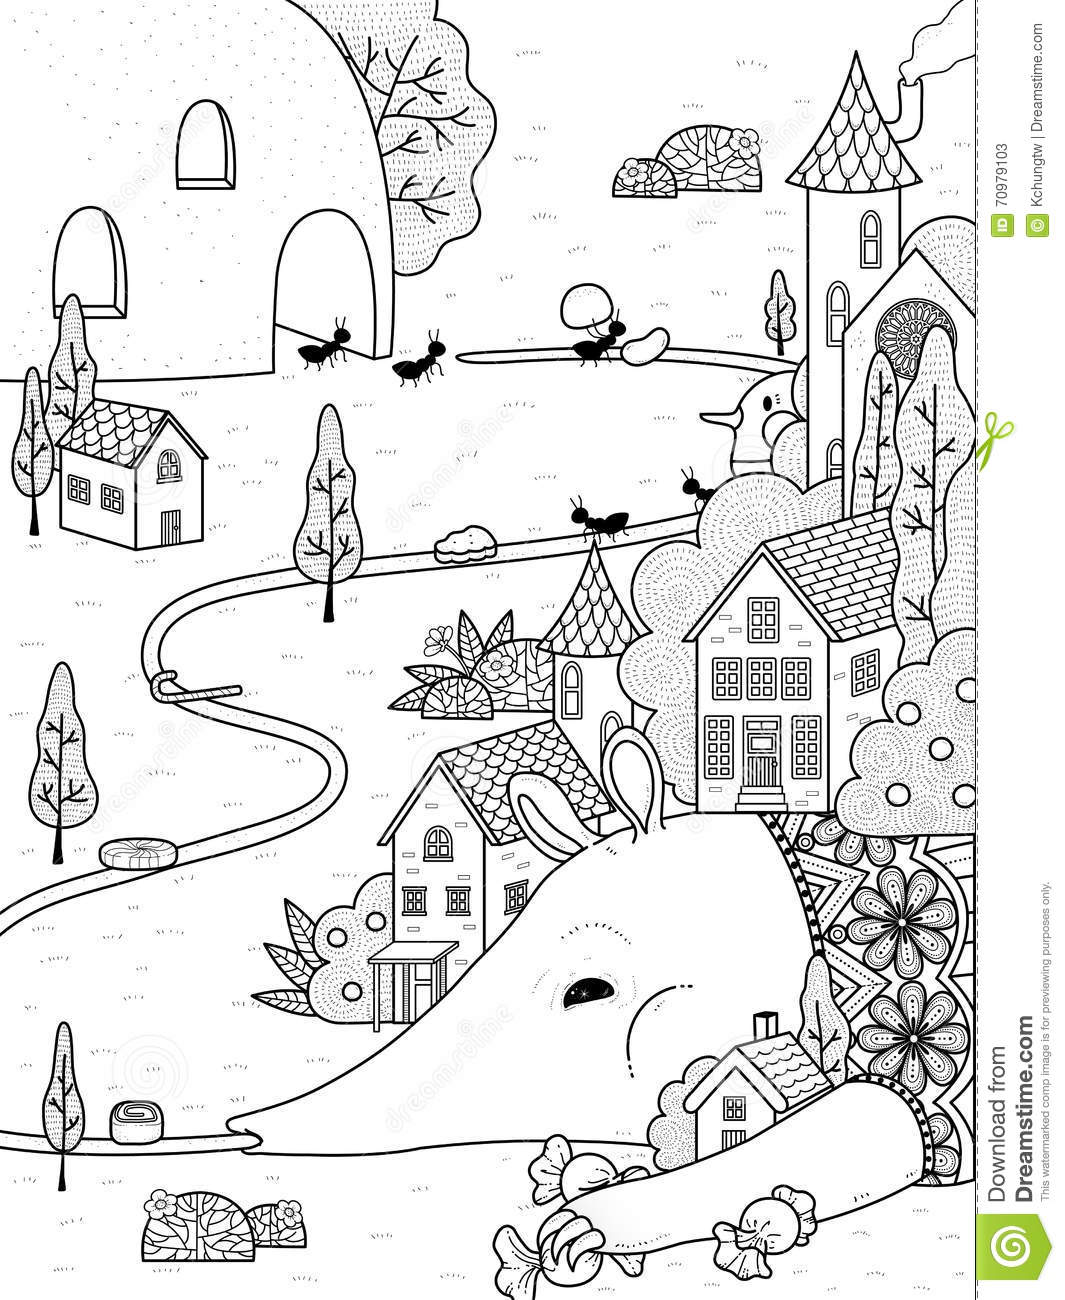 Uncategorized Anteater Coloring Page anteater adult coloring page stock illustration image 70979103 royalty free download page